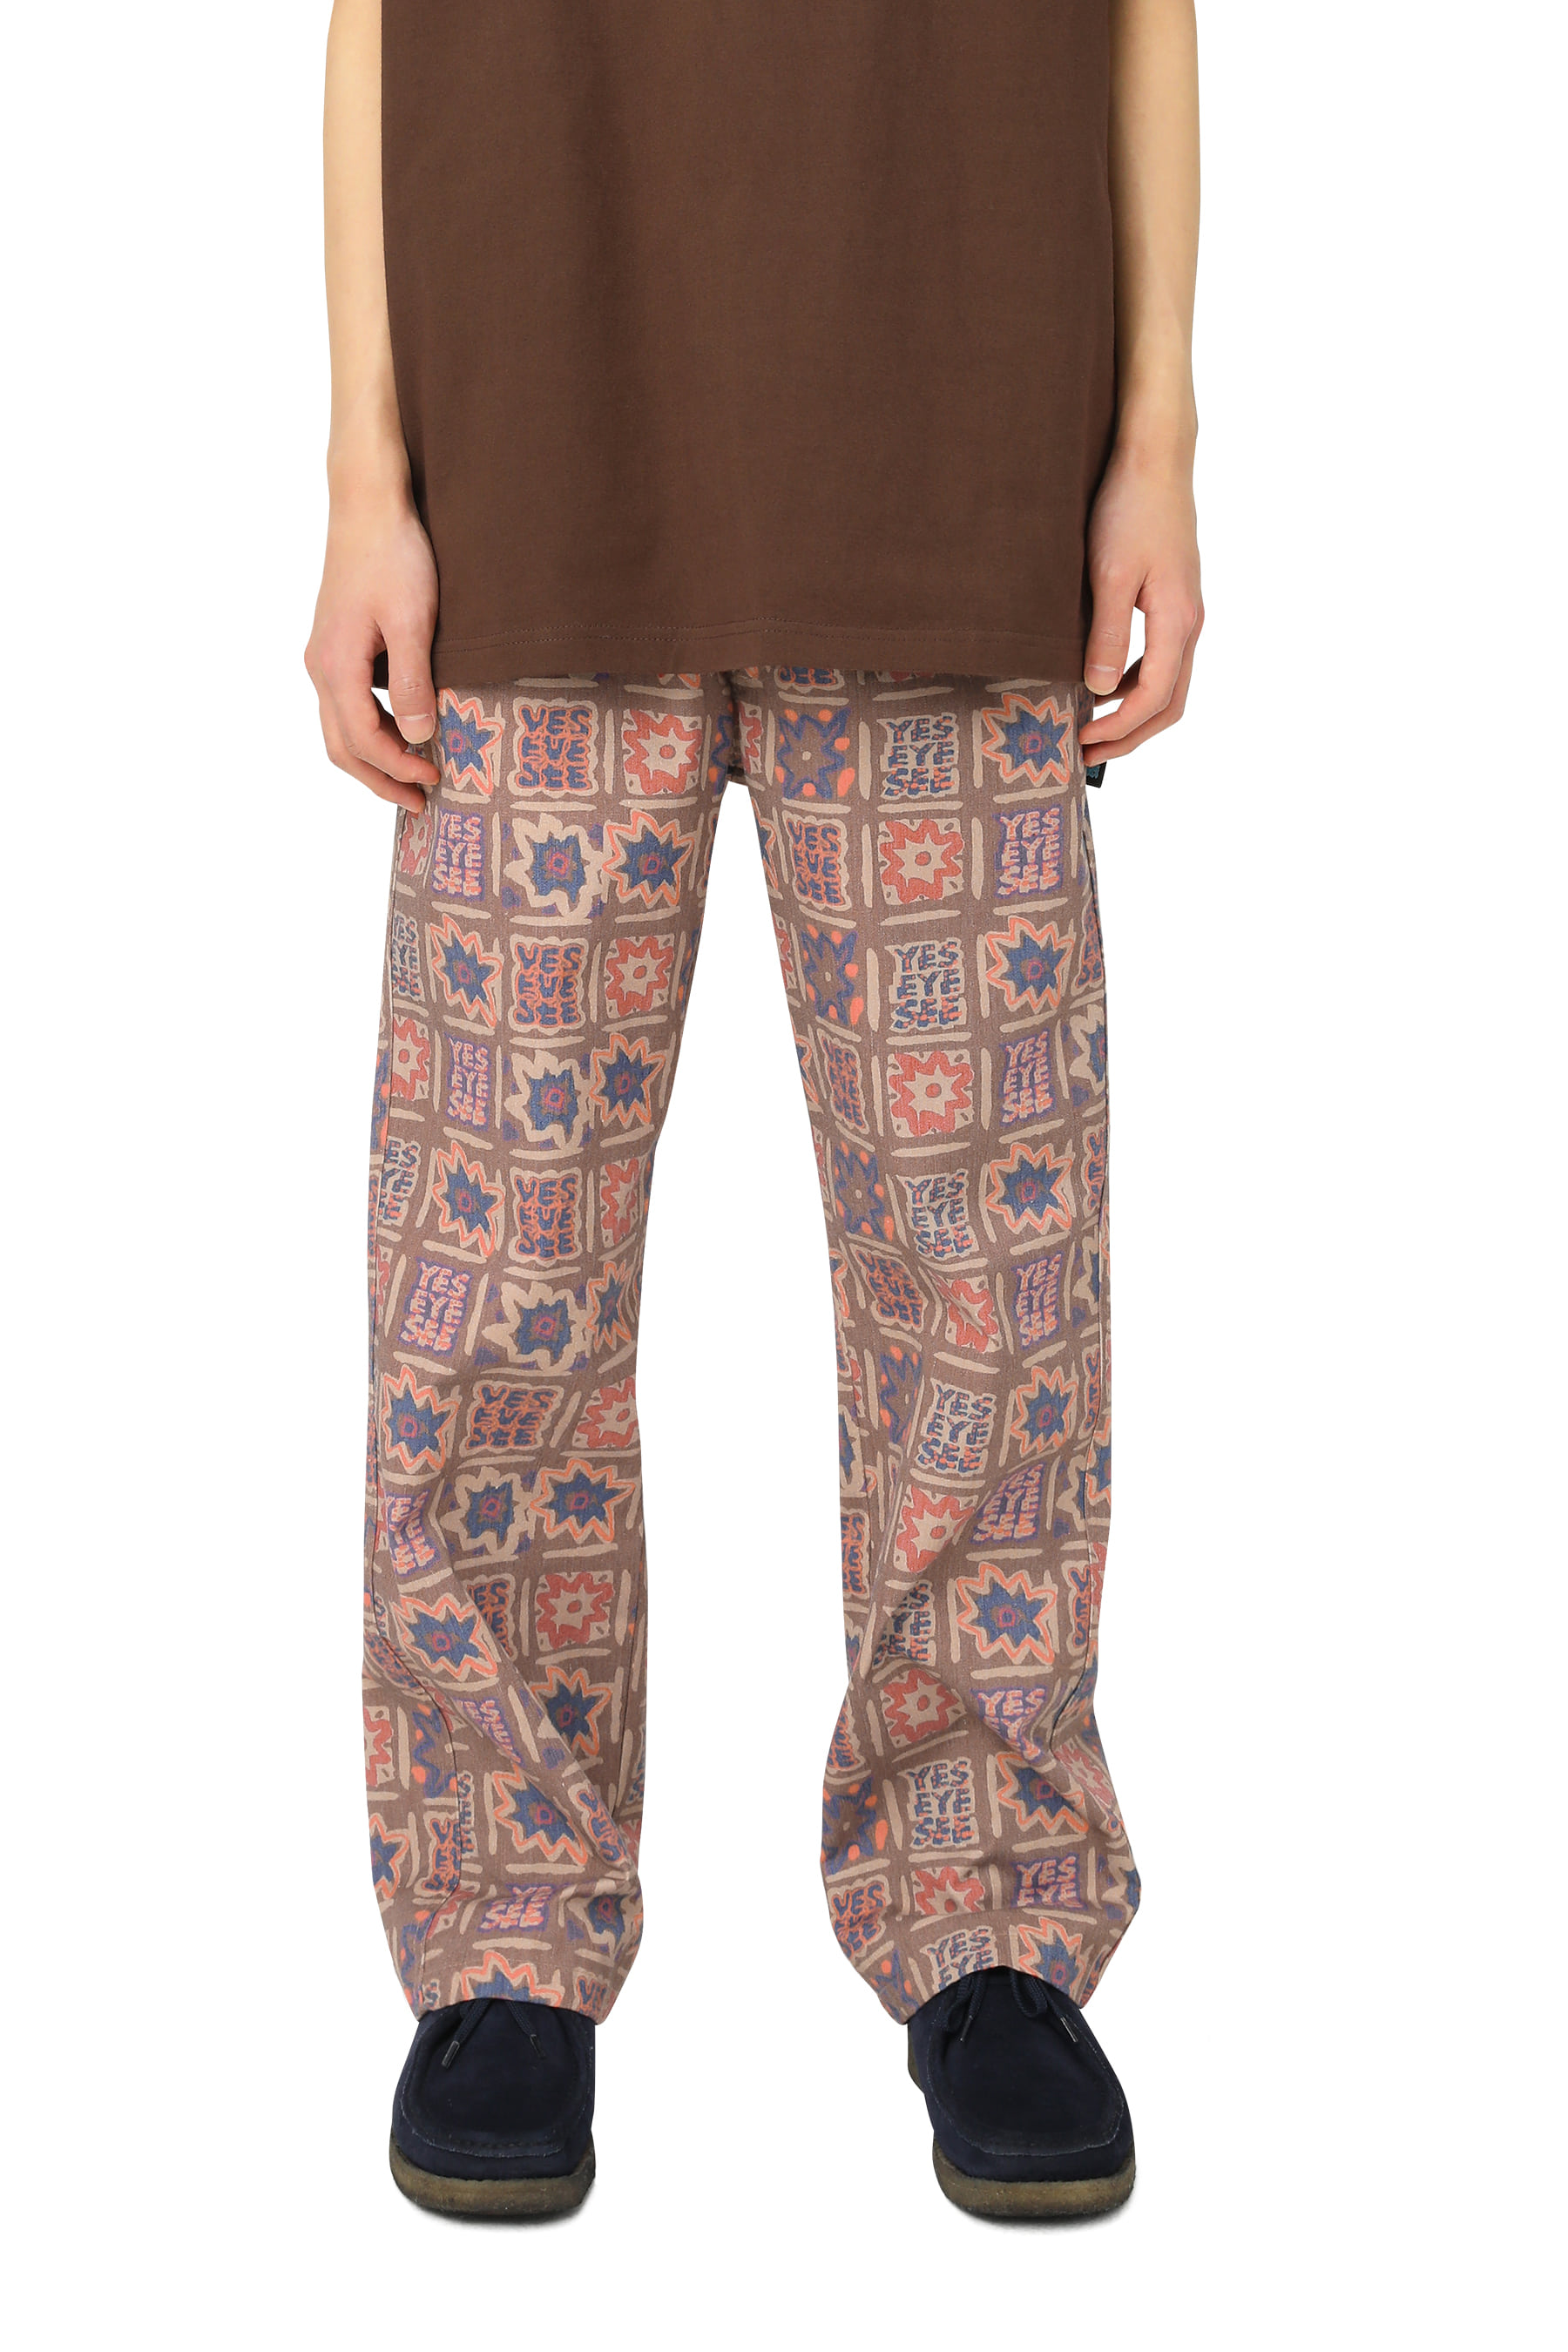 Y.E.S Relaxed Pants Brown